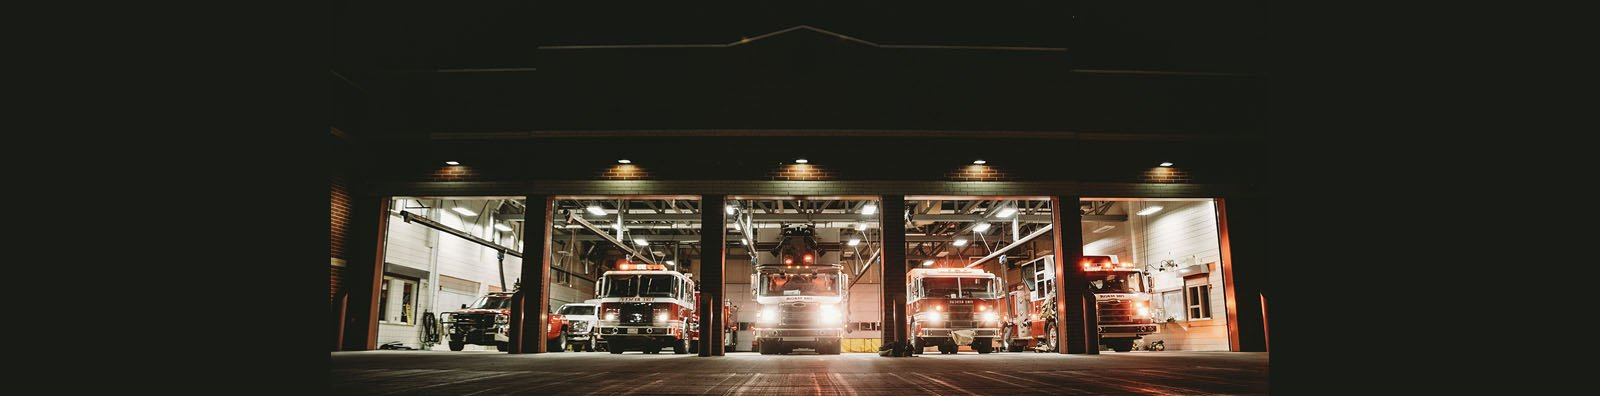 Fire trucks lined up at fire hall